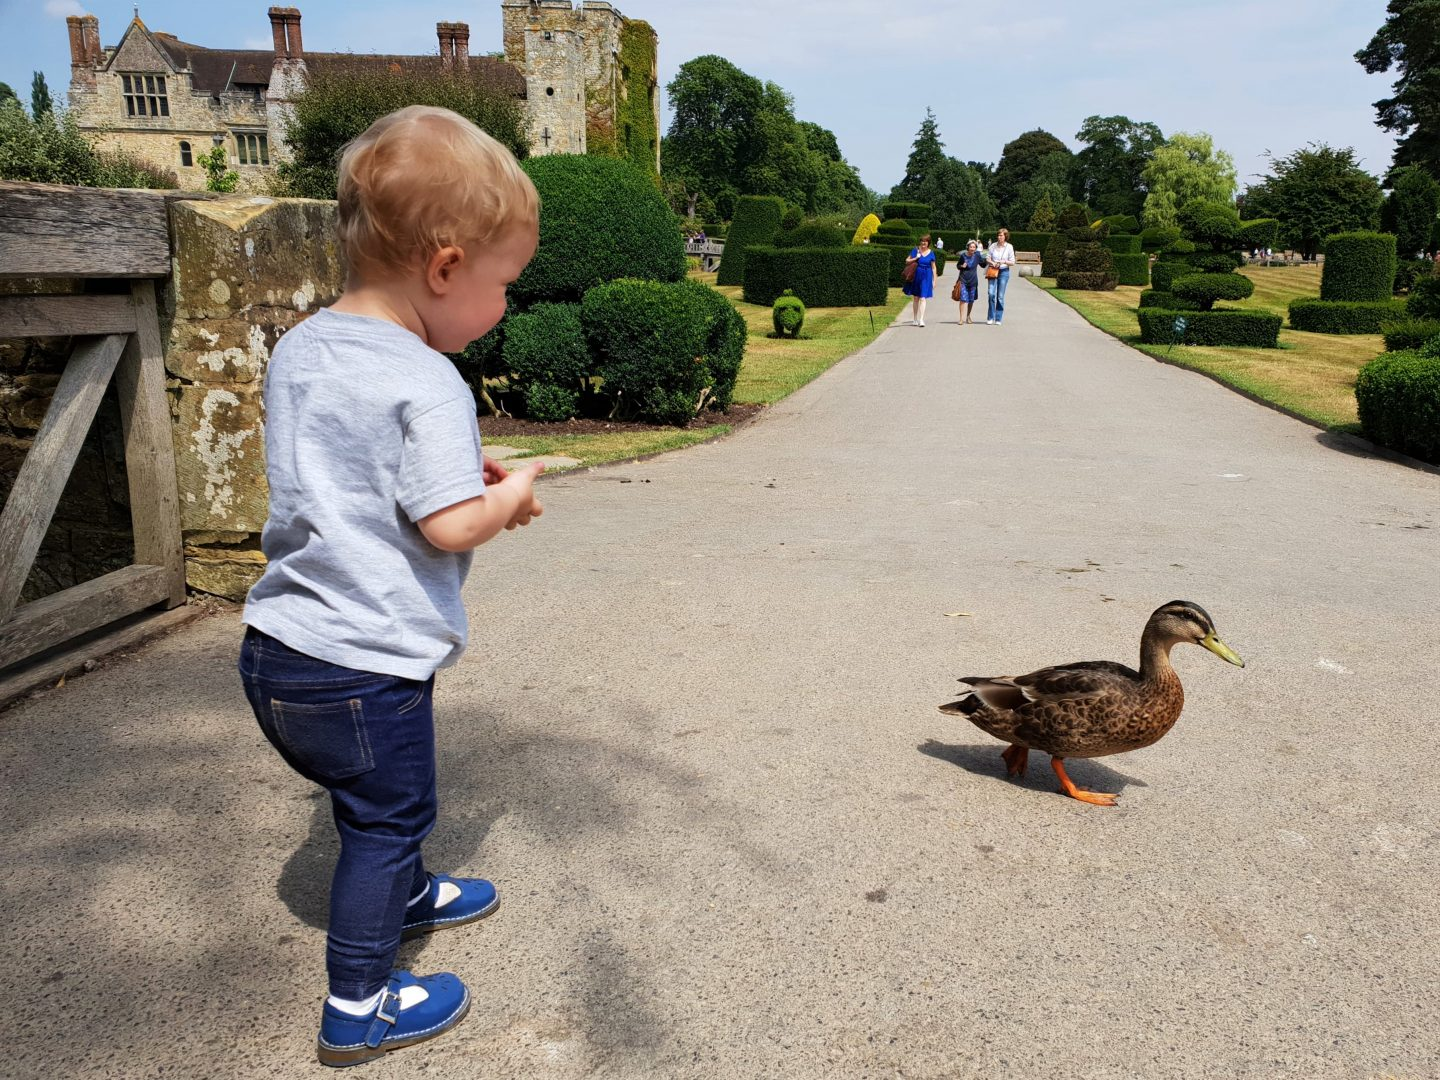 Feeding ducks at Hever Castle